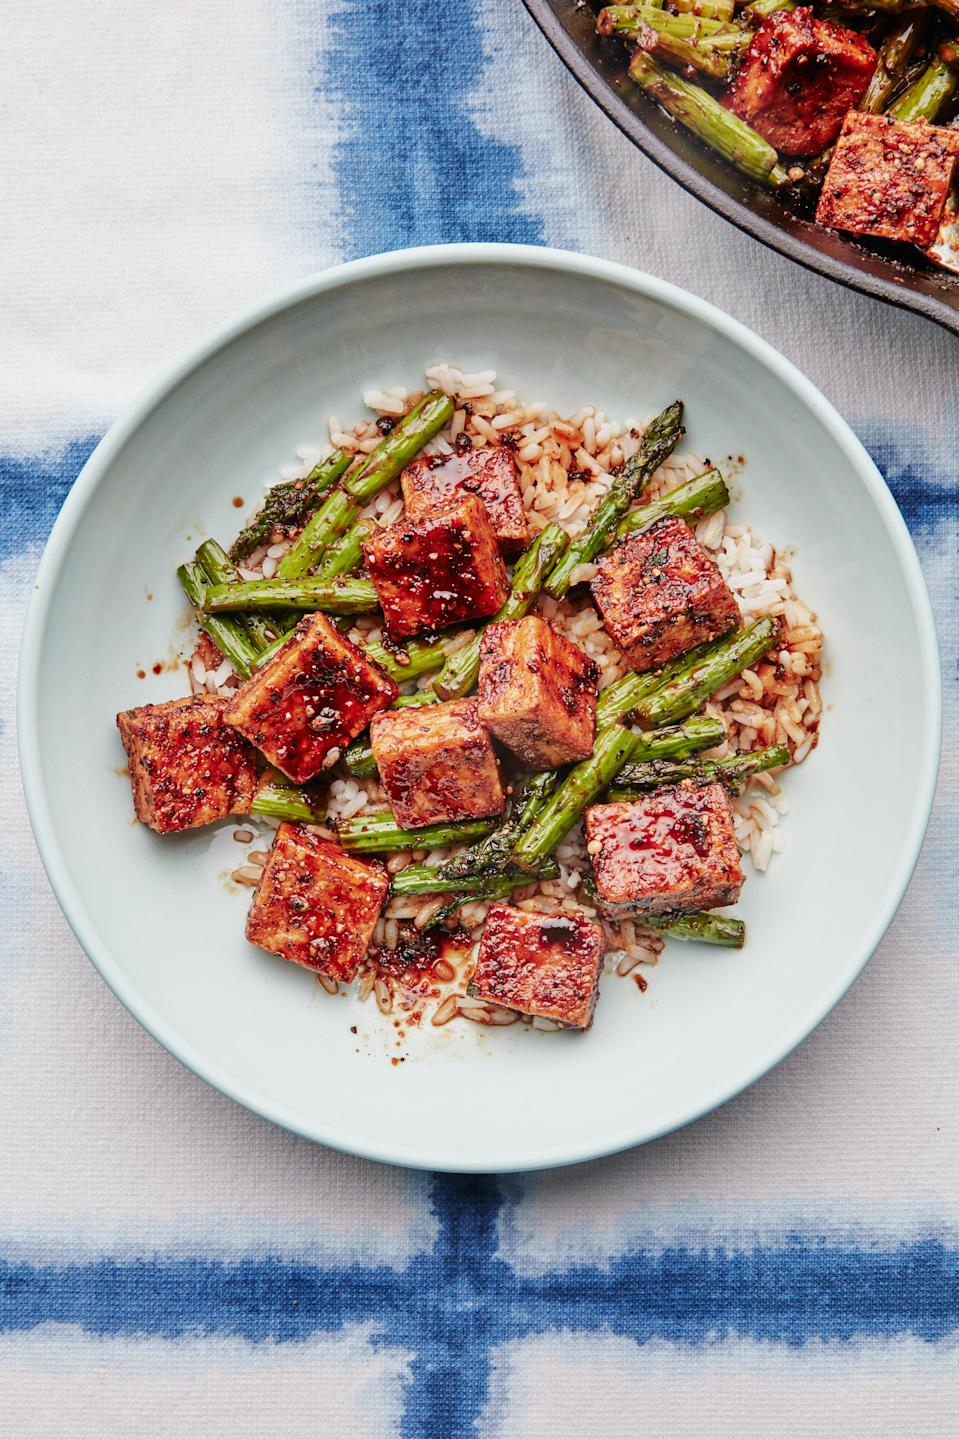 "In this 30-minute dish, which is inspired by Yotam Ottolenghi's recipe in his 2011 book <em>Plenty</em>, black pepper is the star, <em>not</em> the sidekick: When bloomed in oil, the coarsely ground peppercorns become piquant and fragrant enough to flavor the entire sauce, no red pepper flakes, dried chiles, or hot sauce needed. Take care not to burn the peppercorns as you toast them or the flavor could swing from spicy to bitter. <a href=""https://www.bonappetit.com/recipe/black-pepper-tofu-and-asparagus?mbid=synd_yahoo_rss"" rel=""nofollow noopener"" target=""_blank"" data-ylk=""slk:See recipe."" class=""link rapid-noclick-resp"">See recipe.</a>"